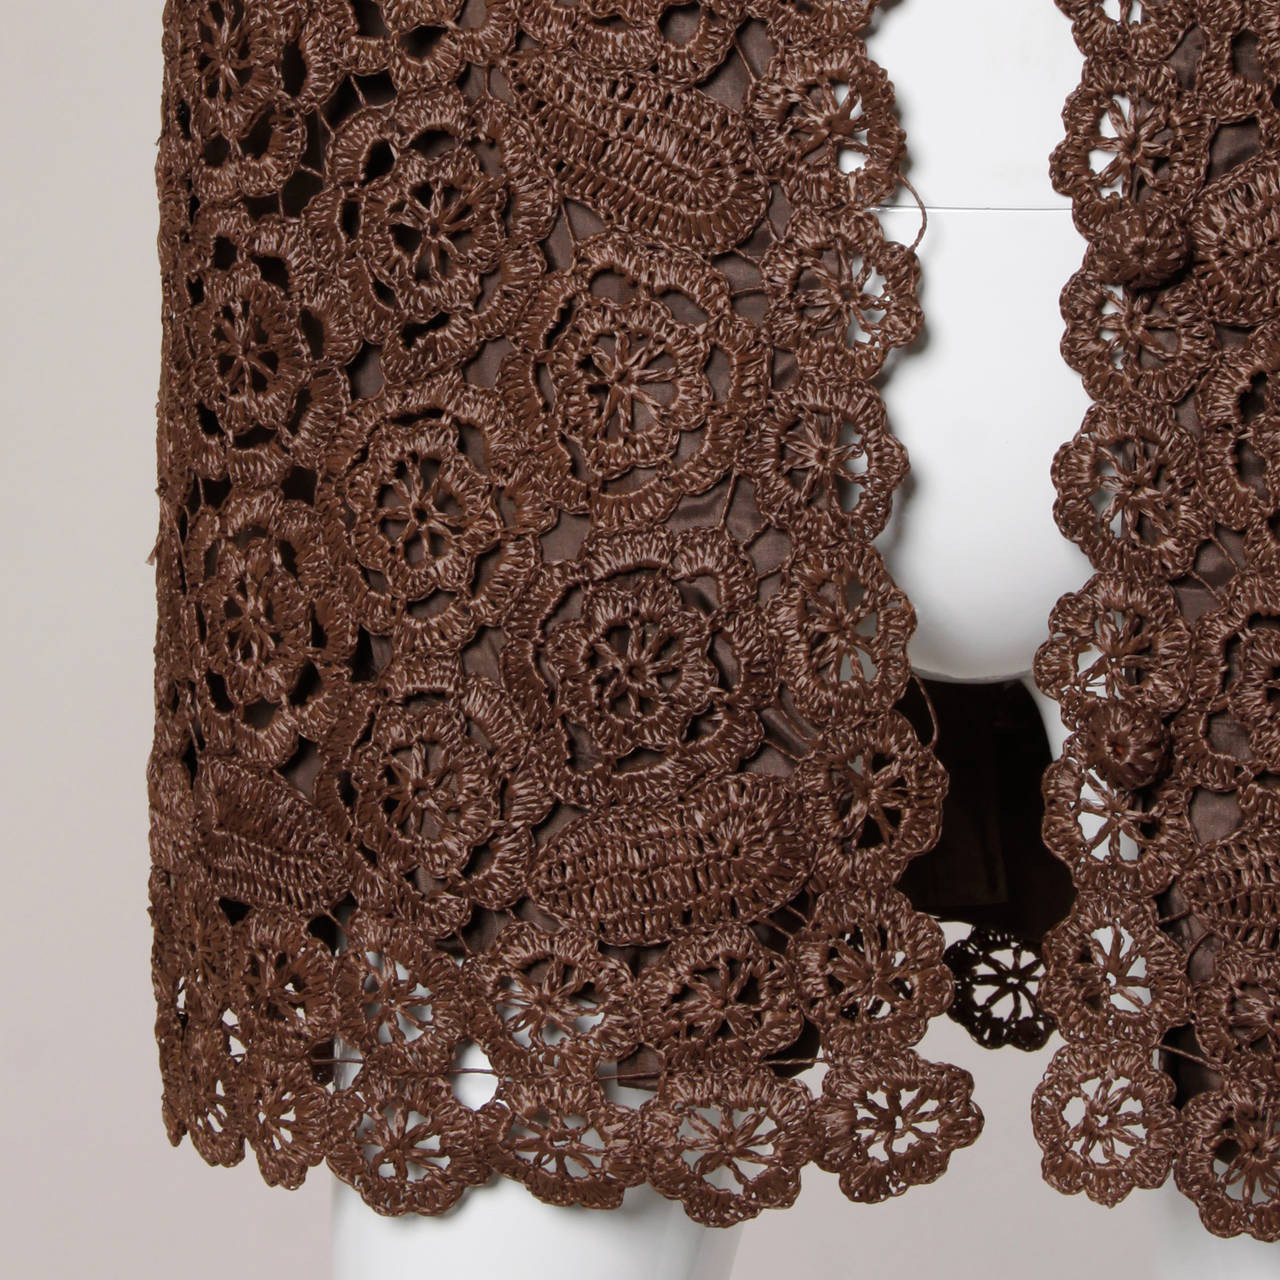 1960s Brown Scalloped Hand Crochet Raffia Lace Jacket or Coat In Excellent Condition For Sale In Sparks, NV